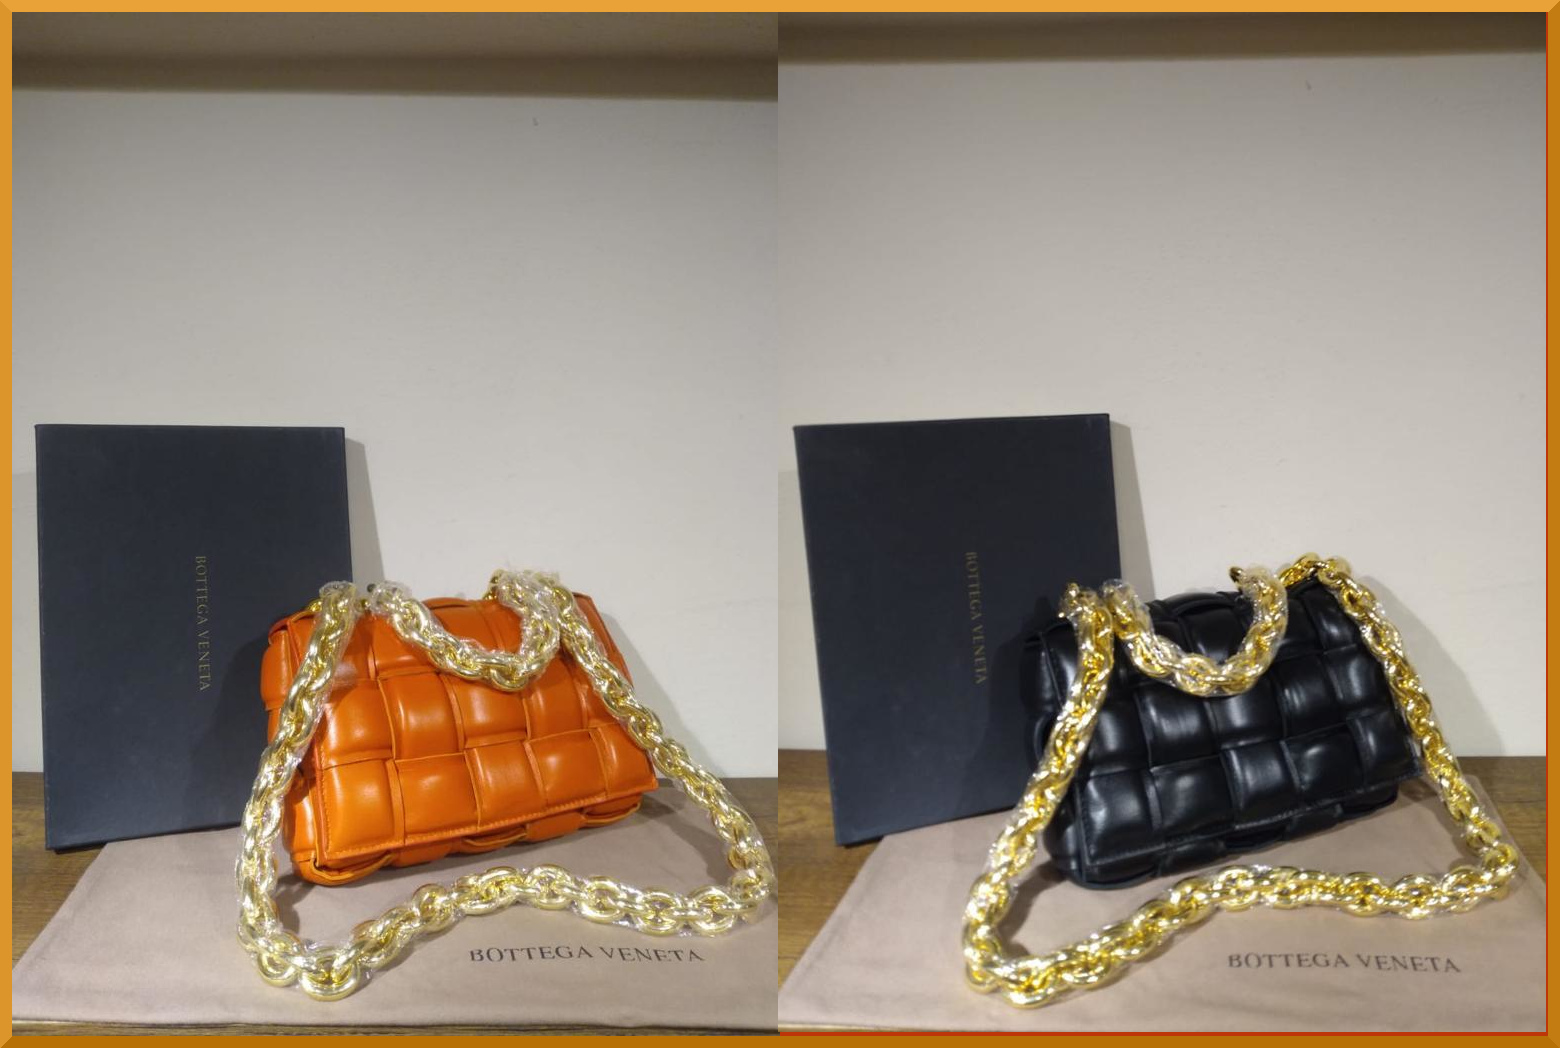 Bottega Veneta woven leather strip bags with oversized chains new for this seasons high fashion tote bags.